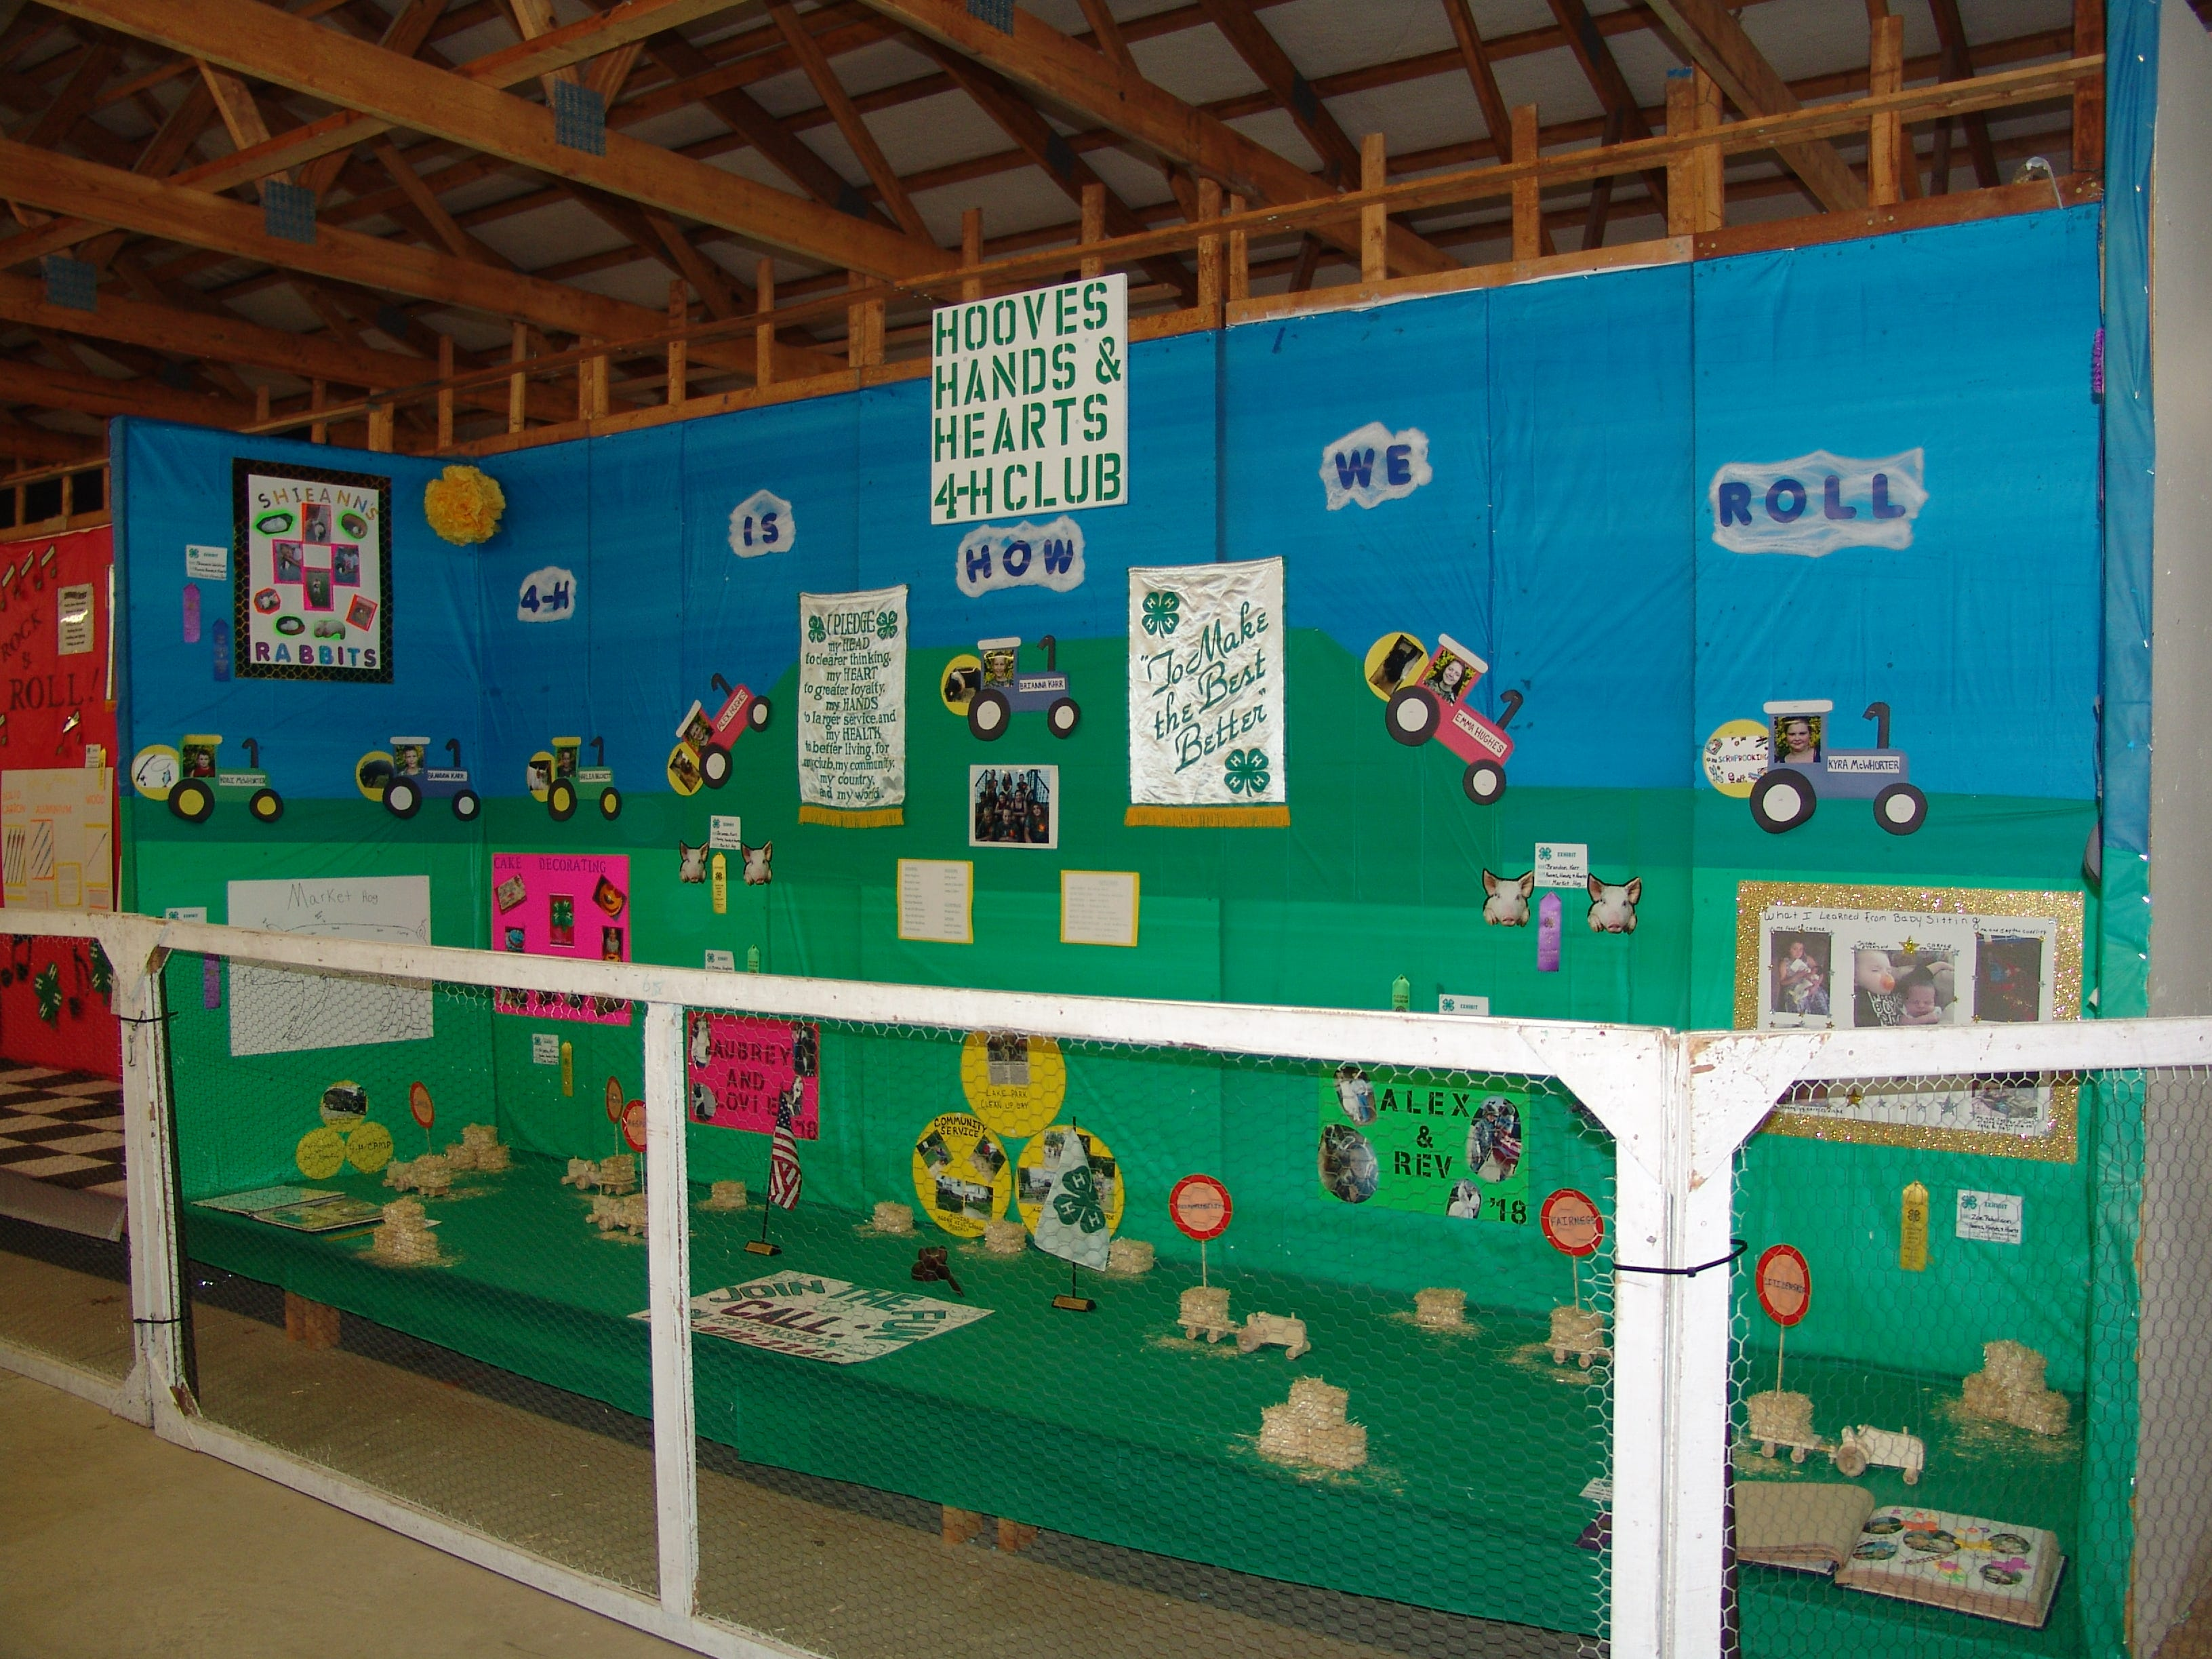 An exhibit in the Youth Building by the Hooves, Hands, and Hearts 4-H club.